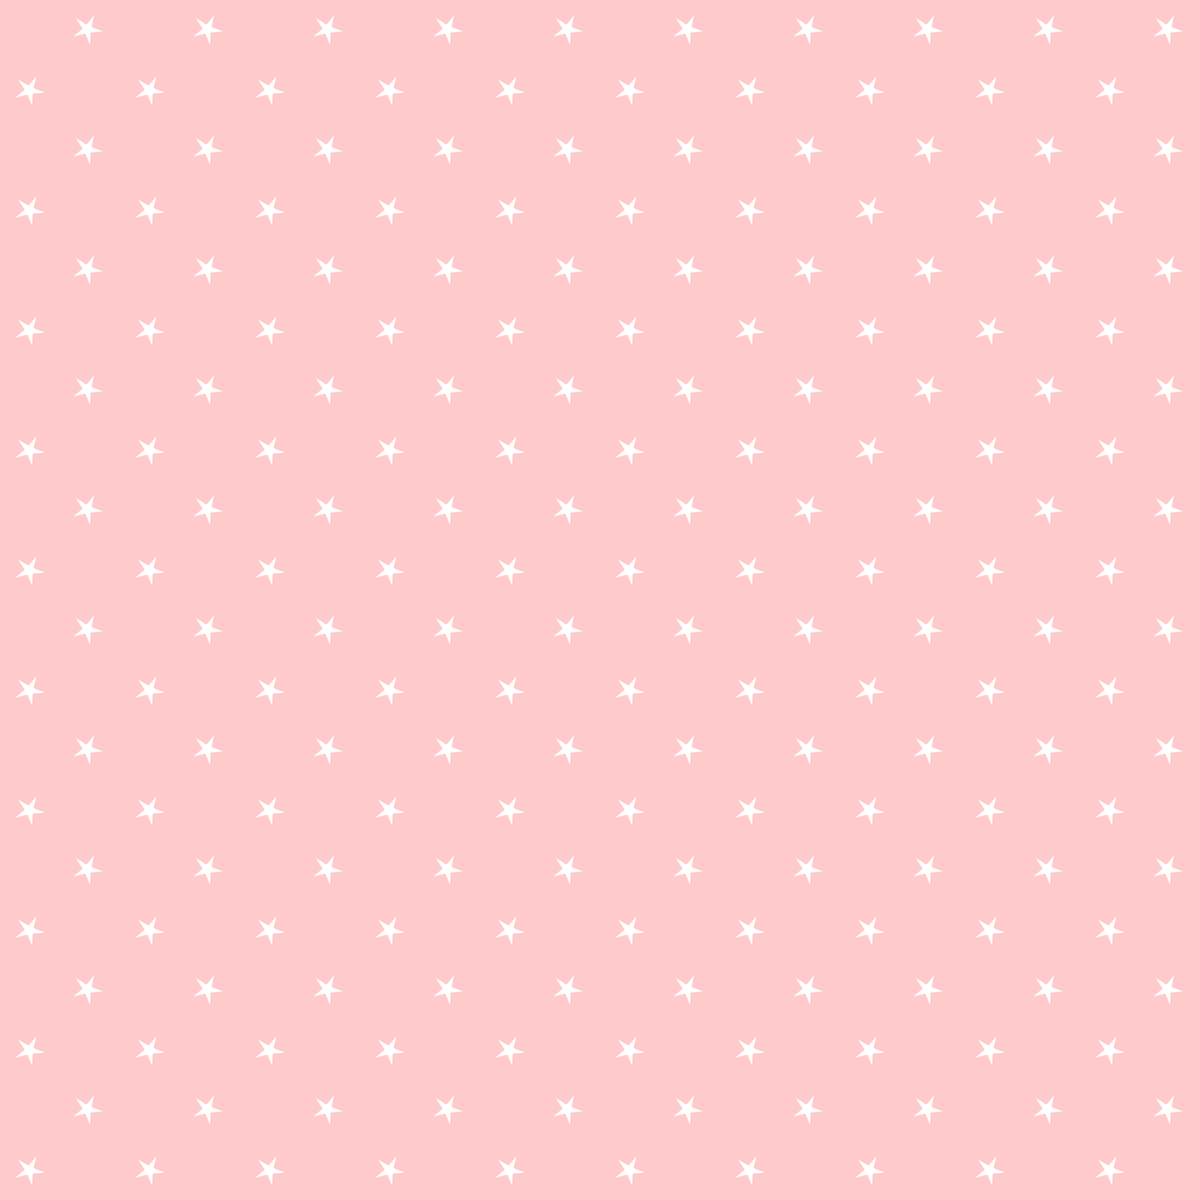 Checkered Scrapbook Paper Stars Scrapbooking Paper